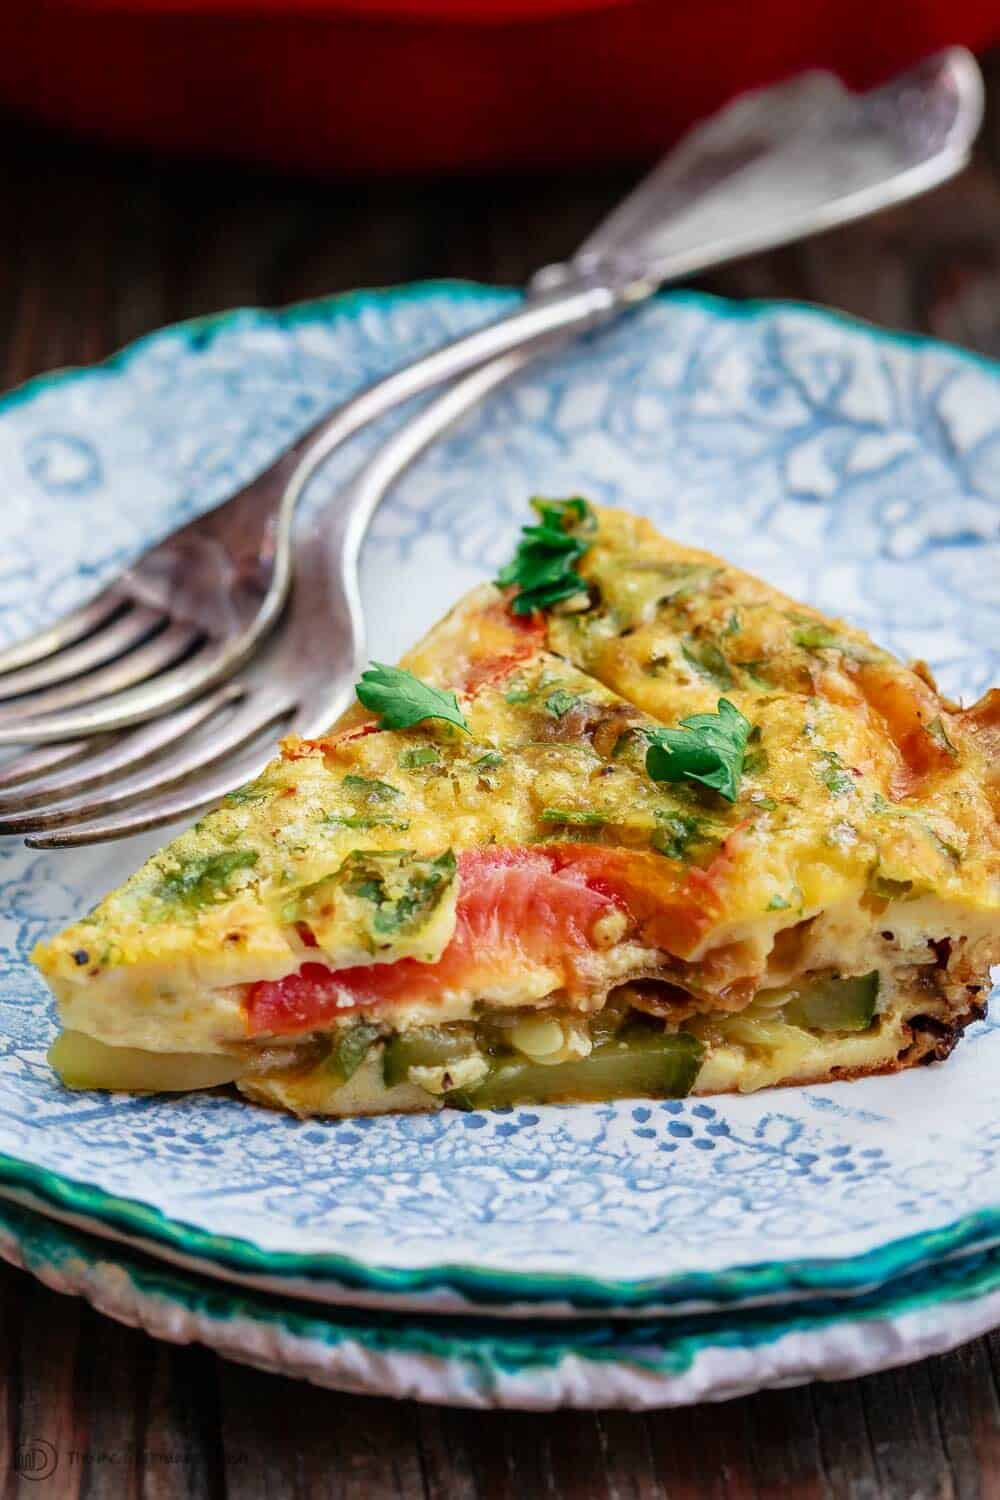 Slice of Crustless Zucchini Quiche